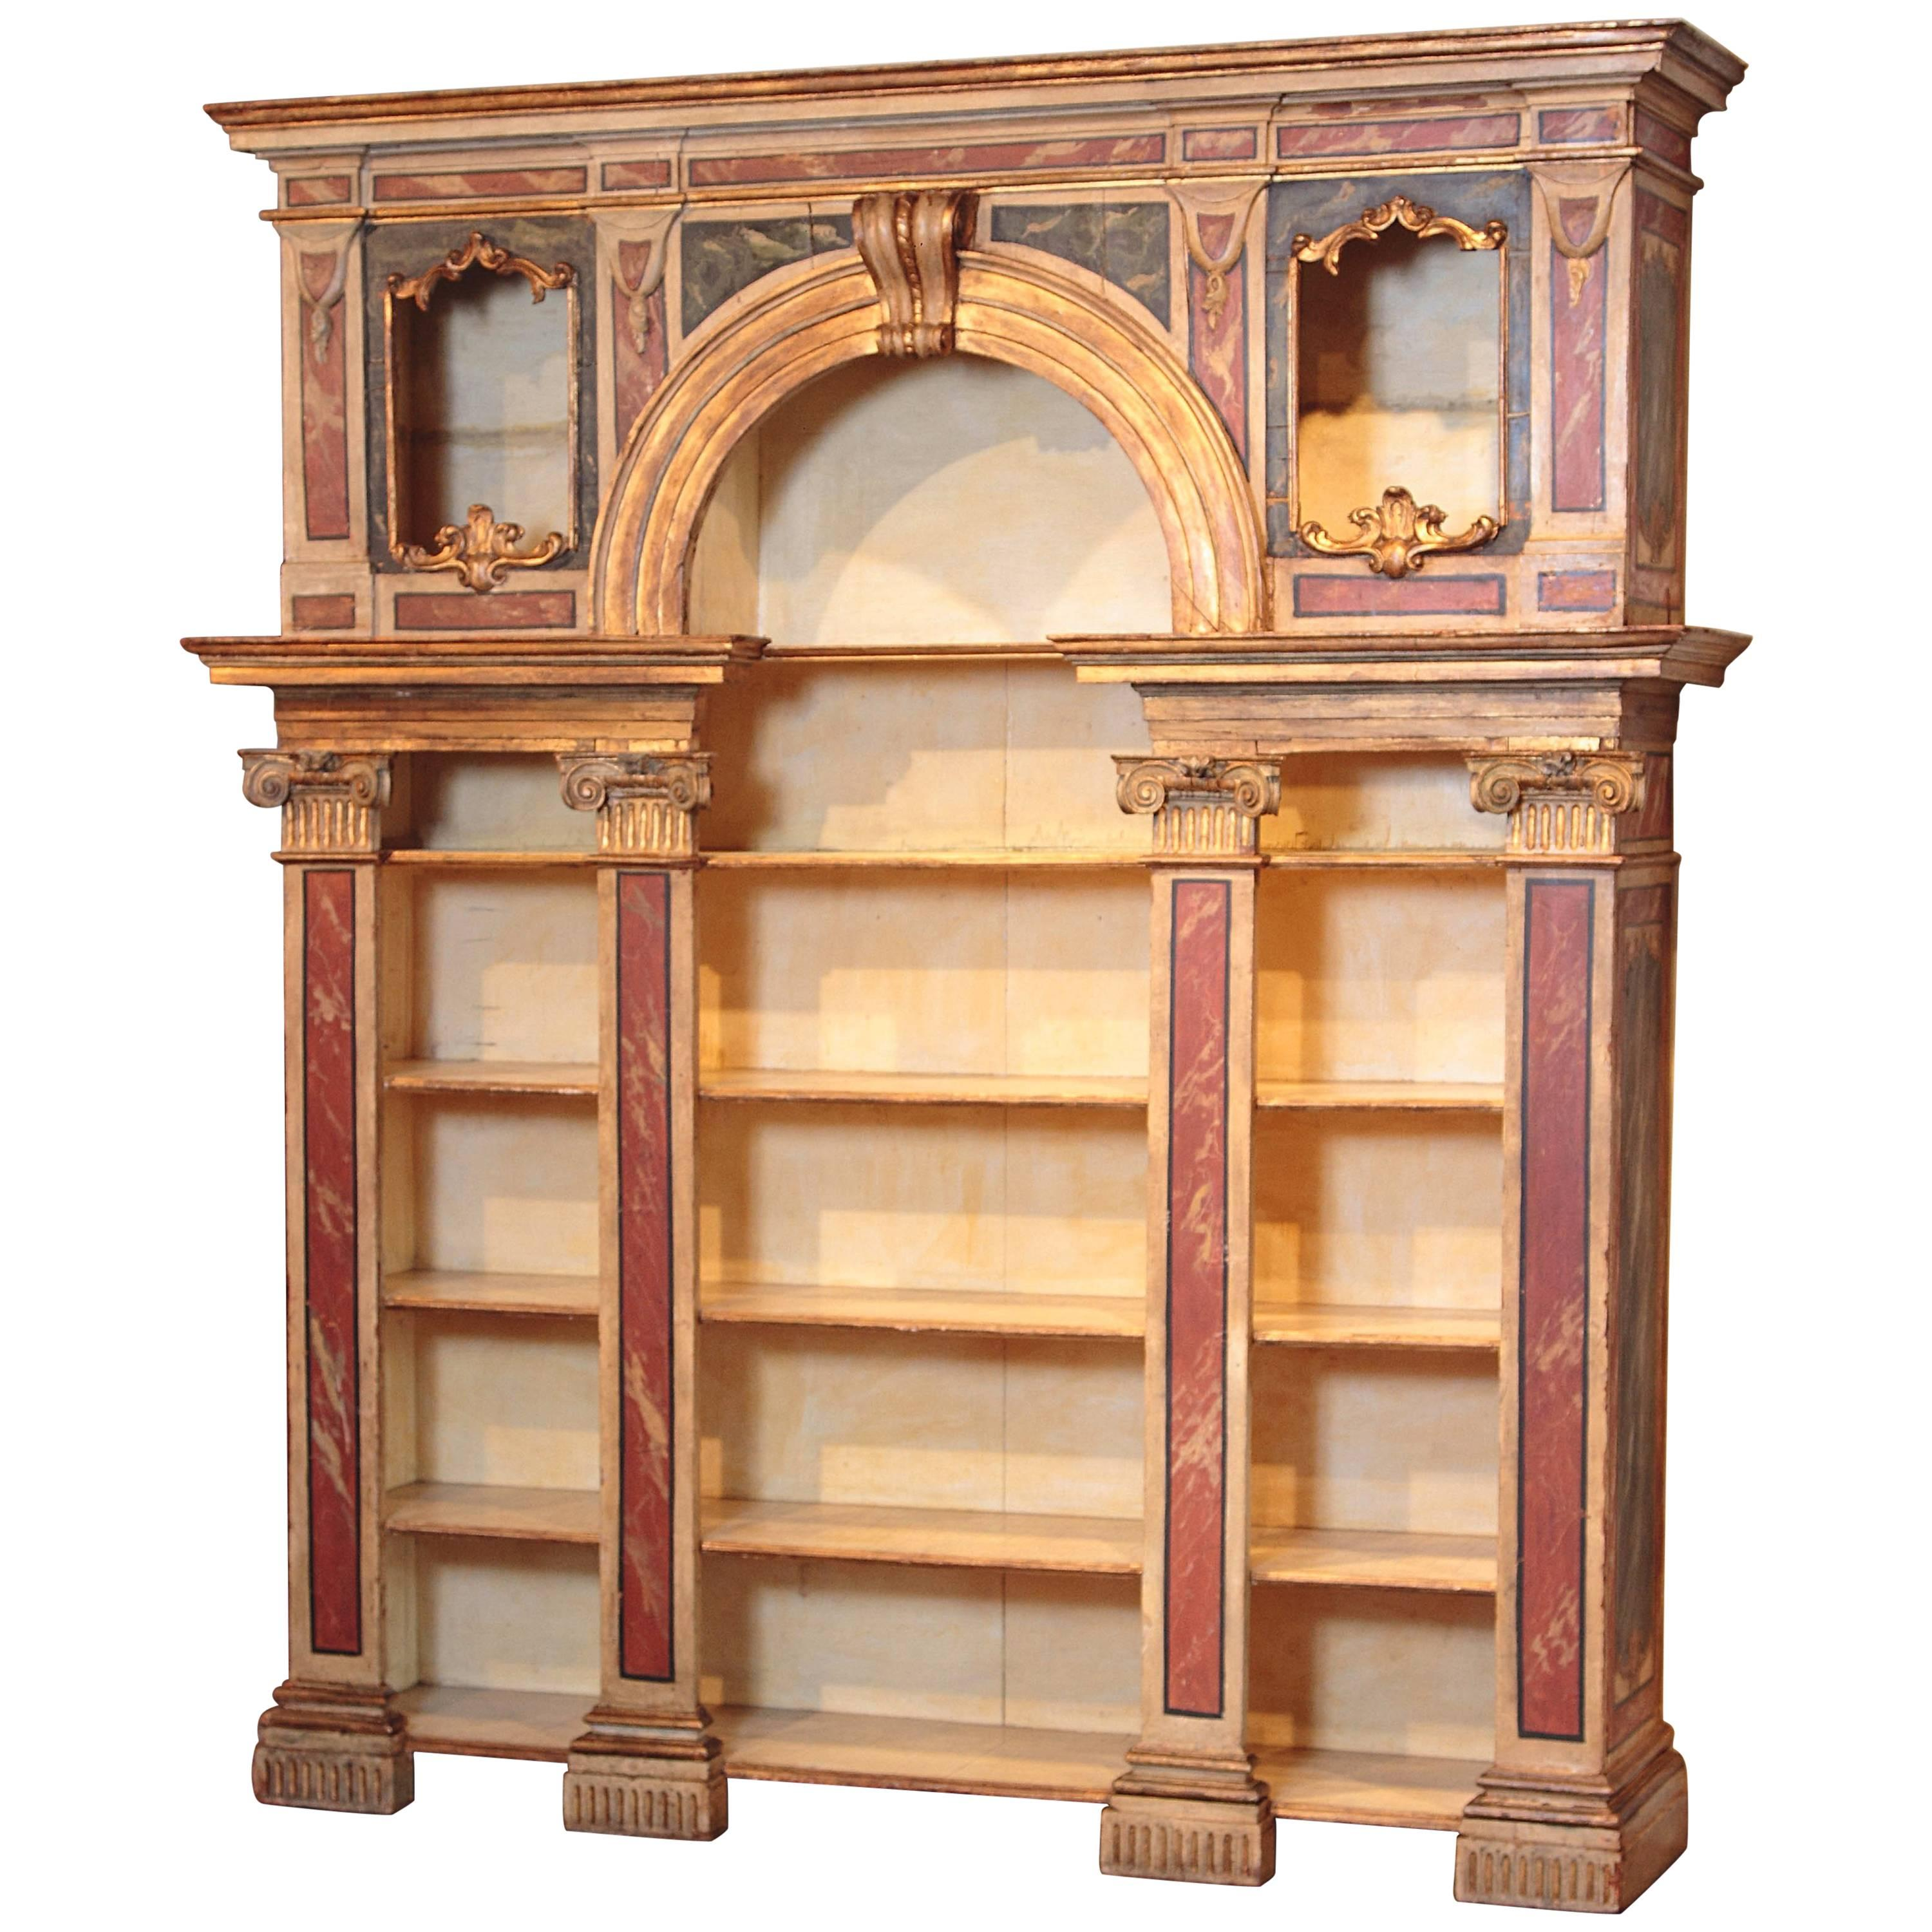 oulton circular heroic timber styled republic image timothy large bookcase coco furniture bookcases storage